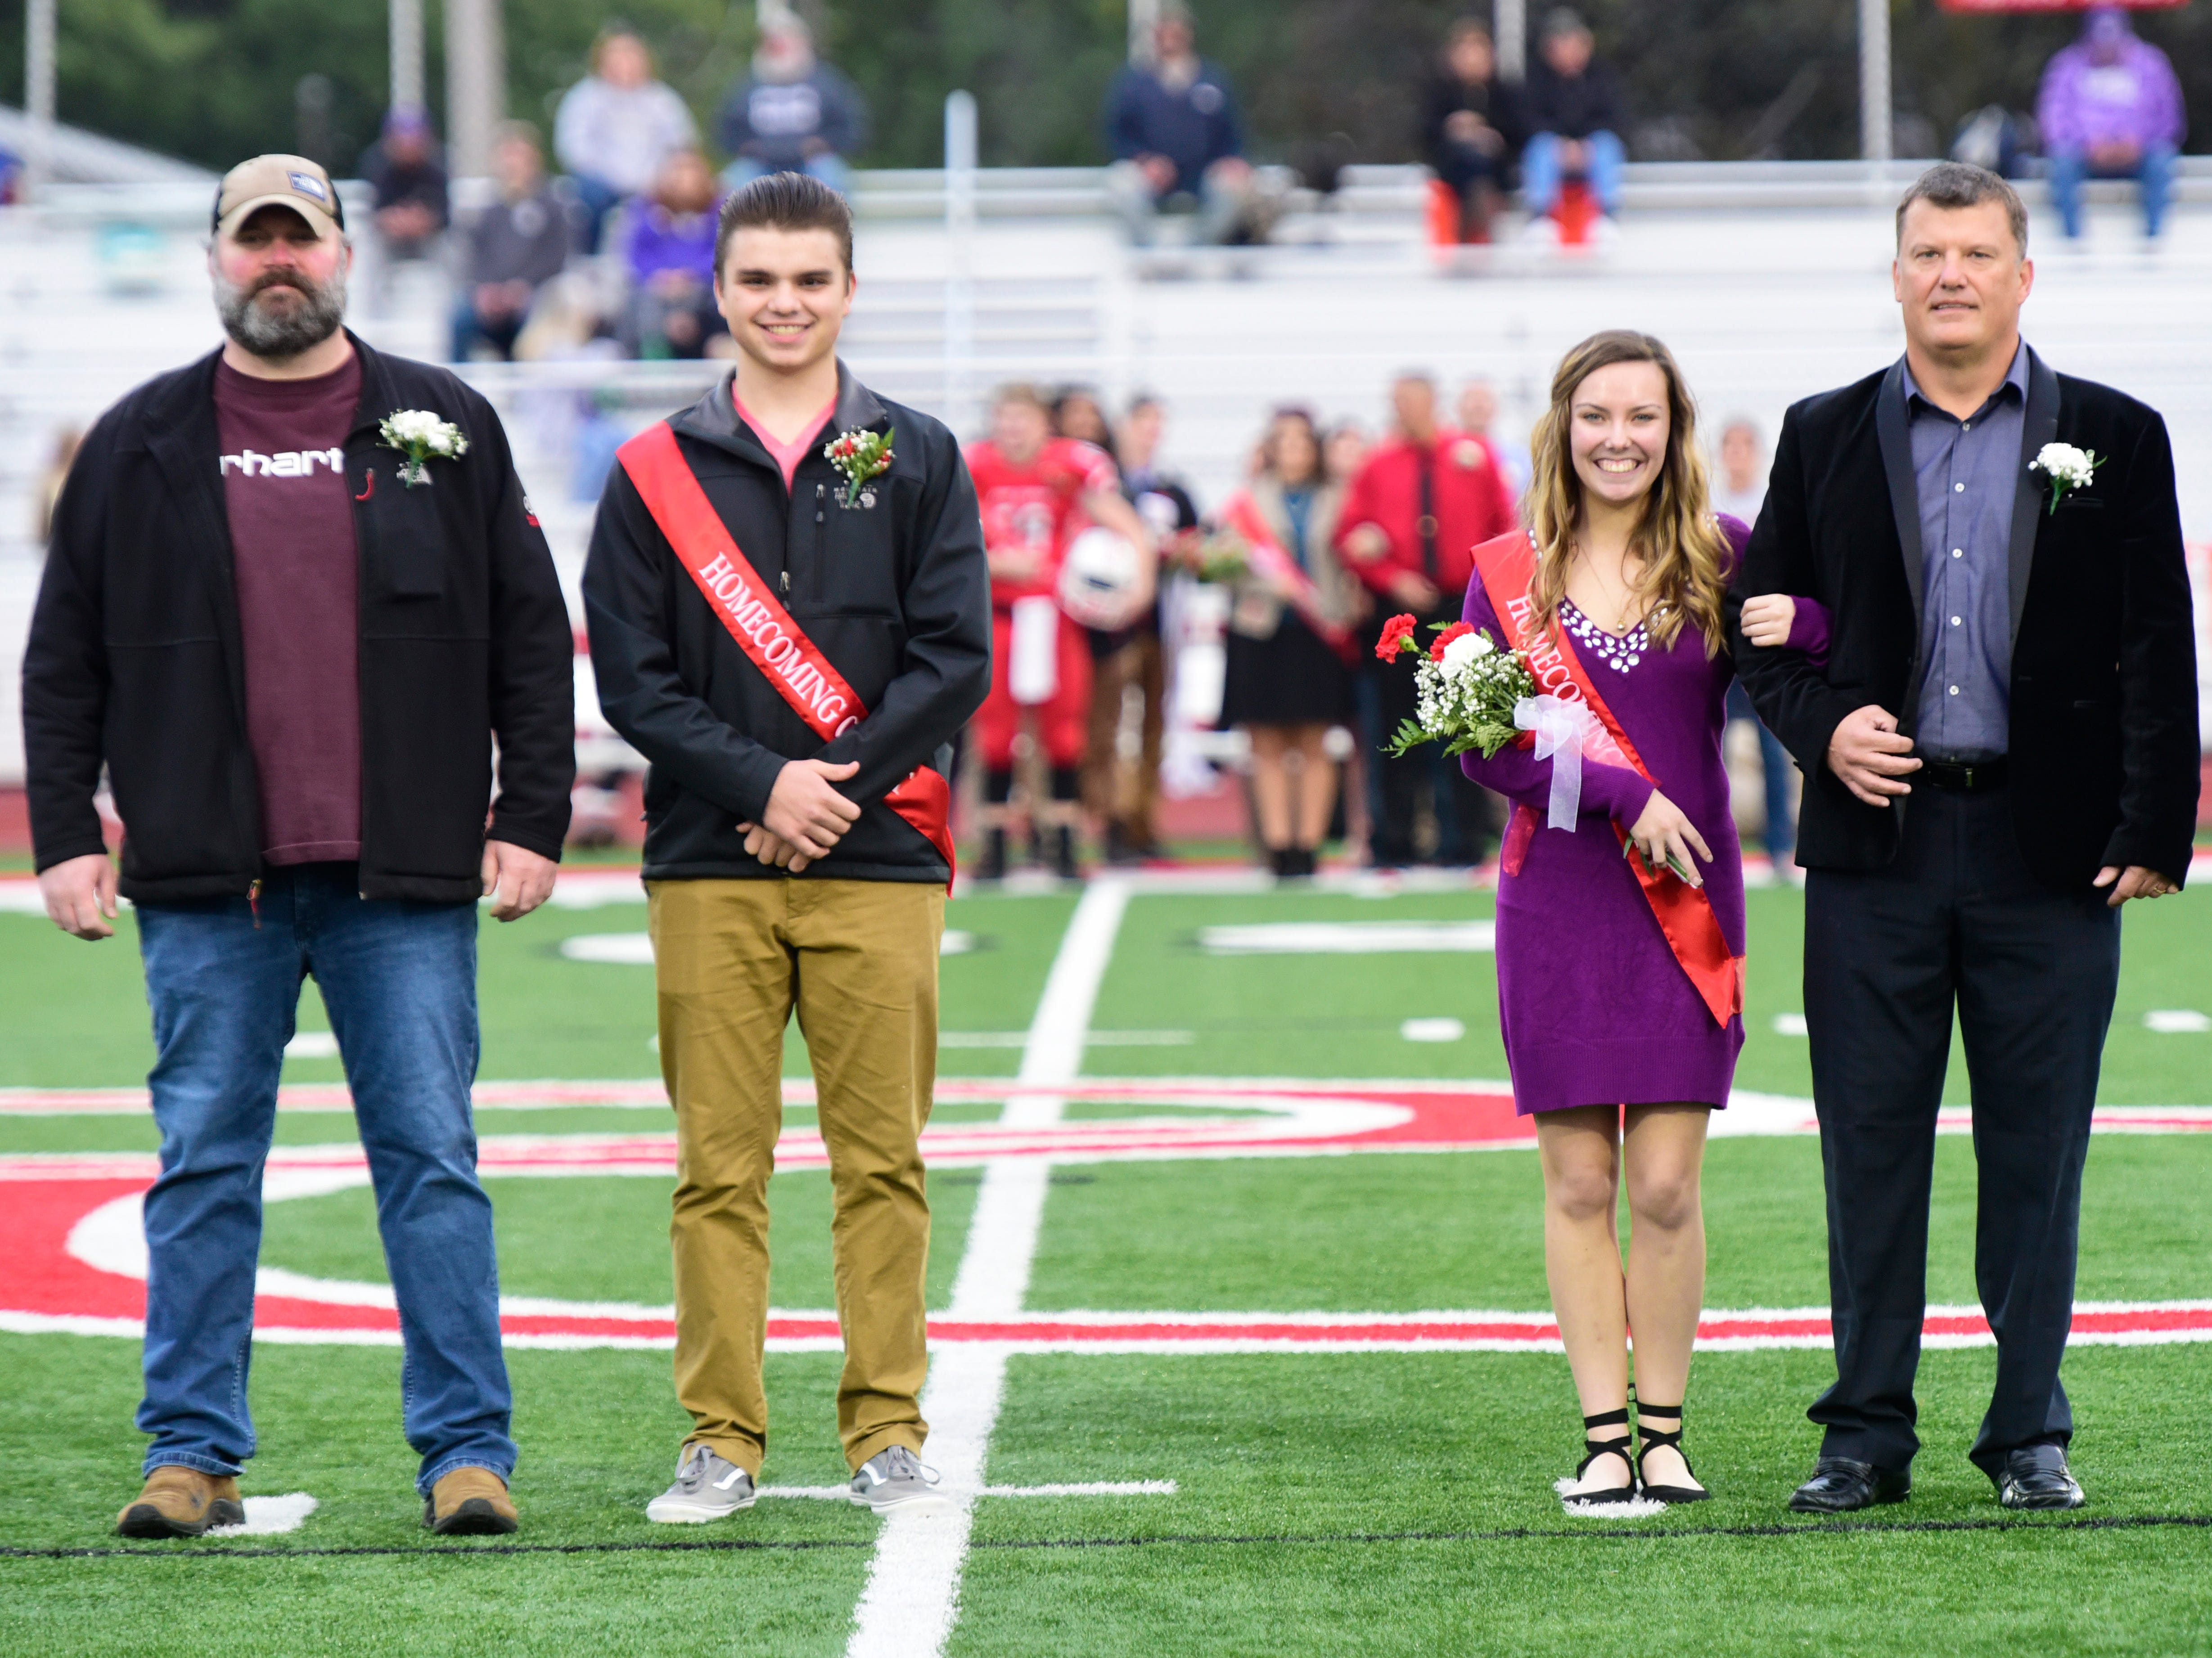 Port Clinton High School 2018 senior homecoming attendants Riley Damschen, left, and Alexis Yoh.